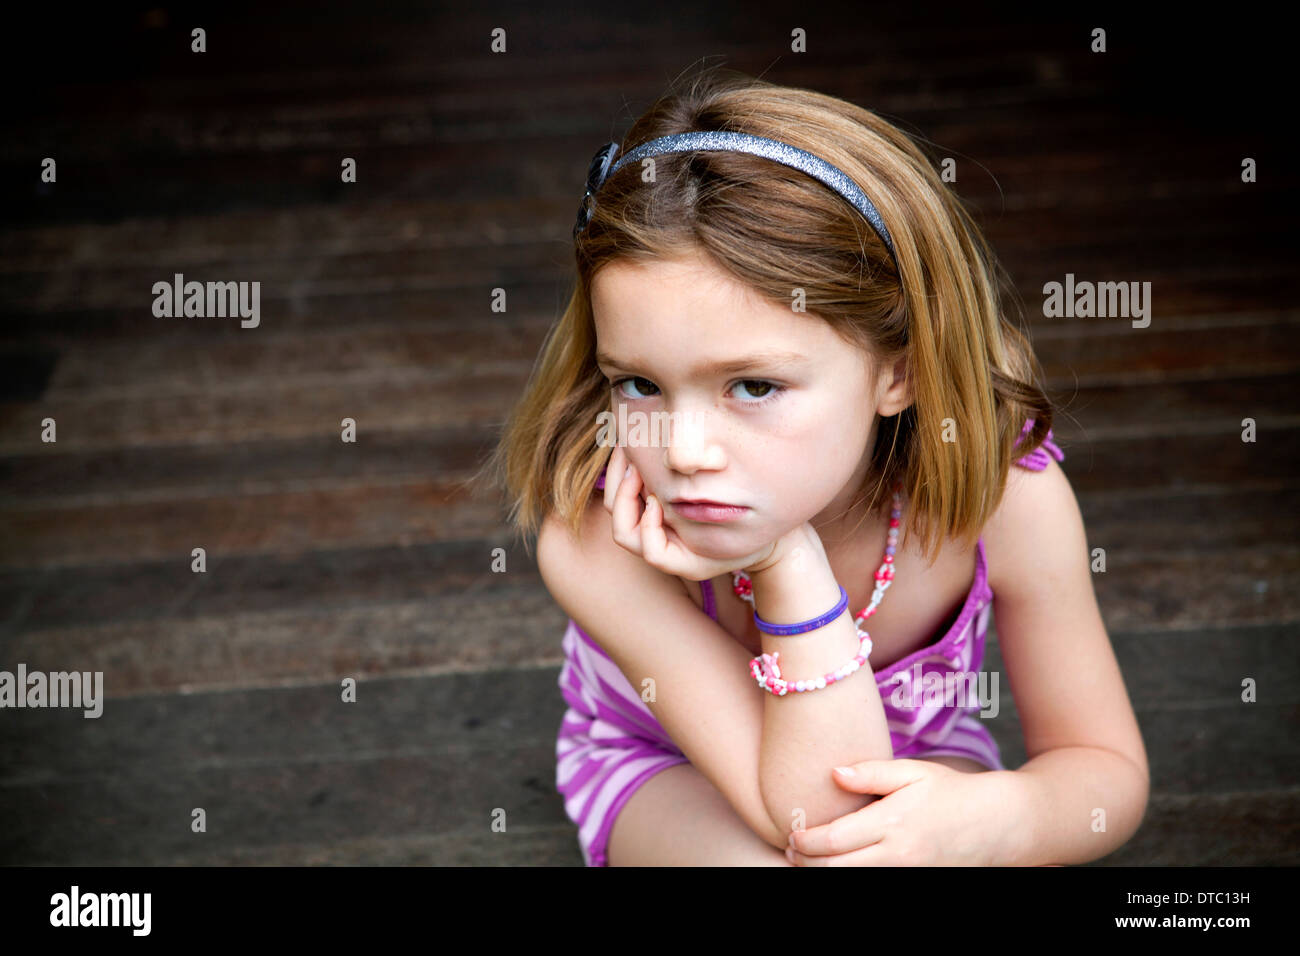 Sullen young girl sitting on porch with hands on chin - Stock Image